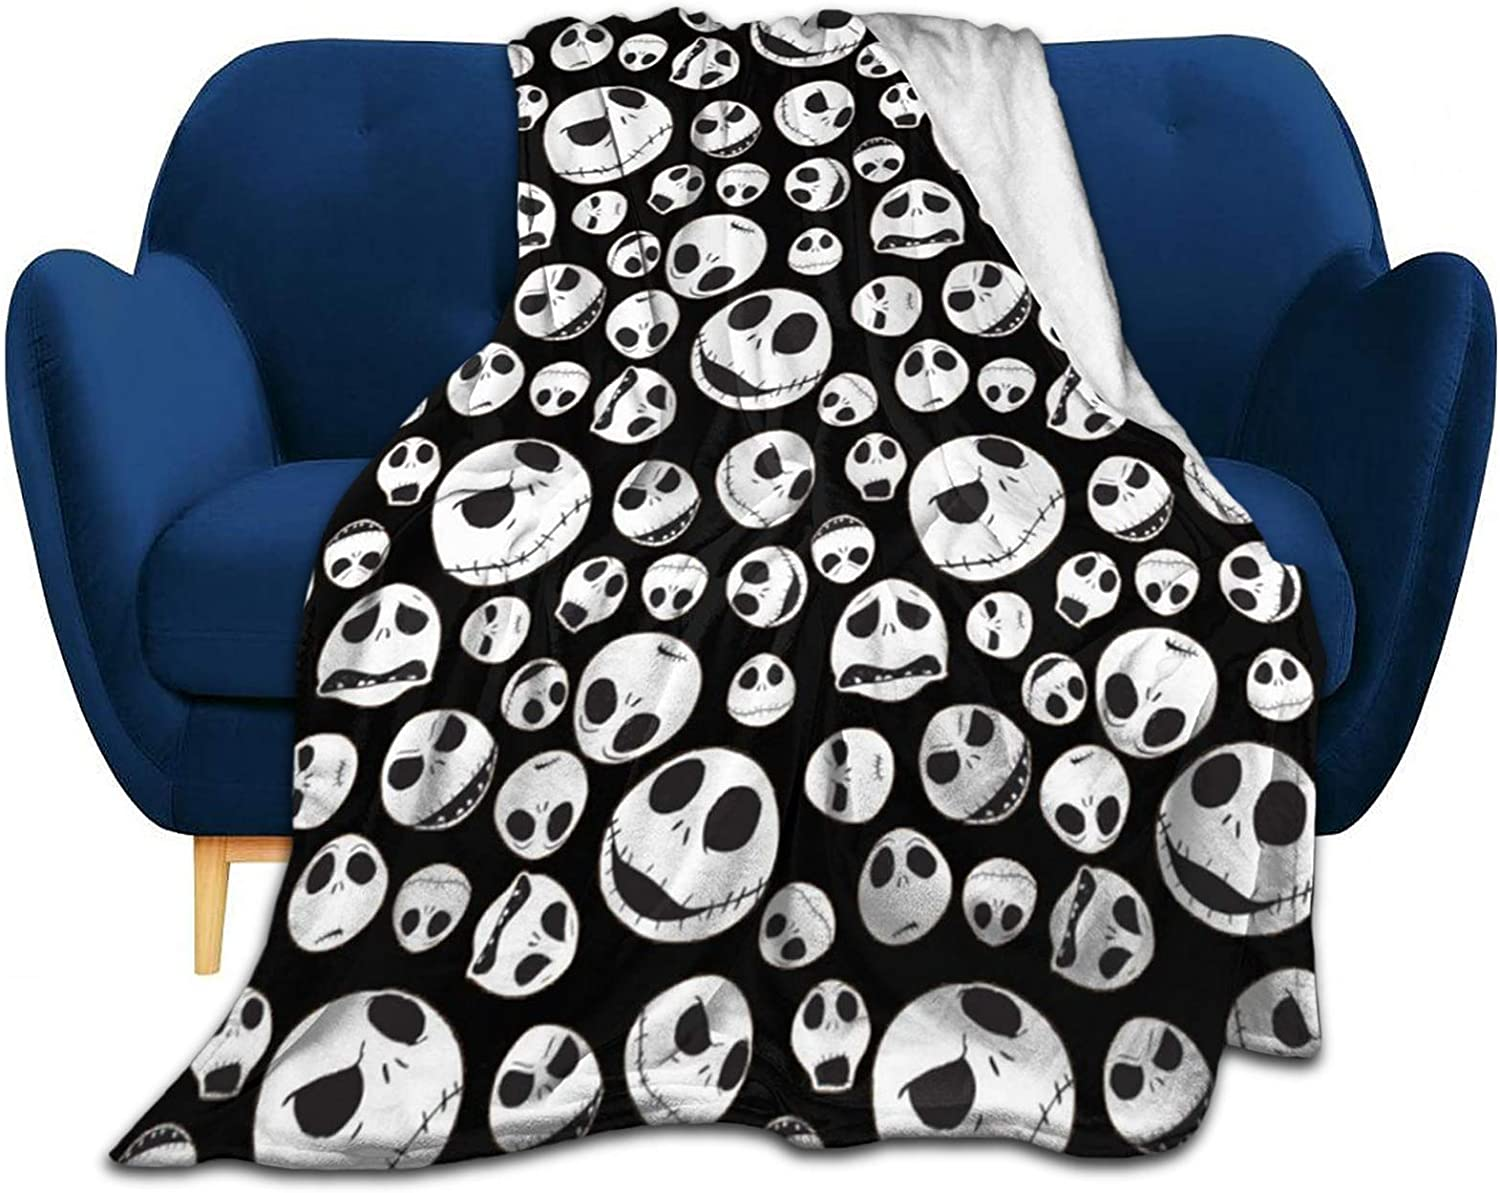 """Pantsing Nightmare Before Christmas Movie Blankets And Throws For Bed Soft Fleece Blankets For Home 50""""X40"""""""